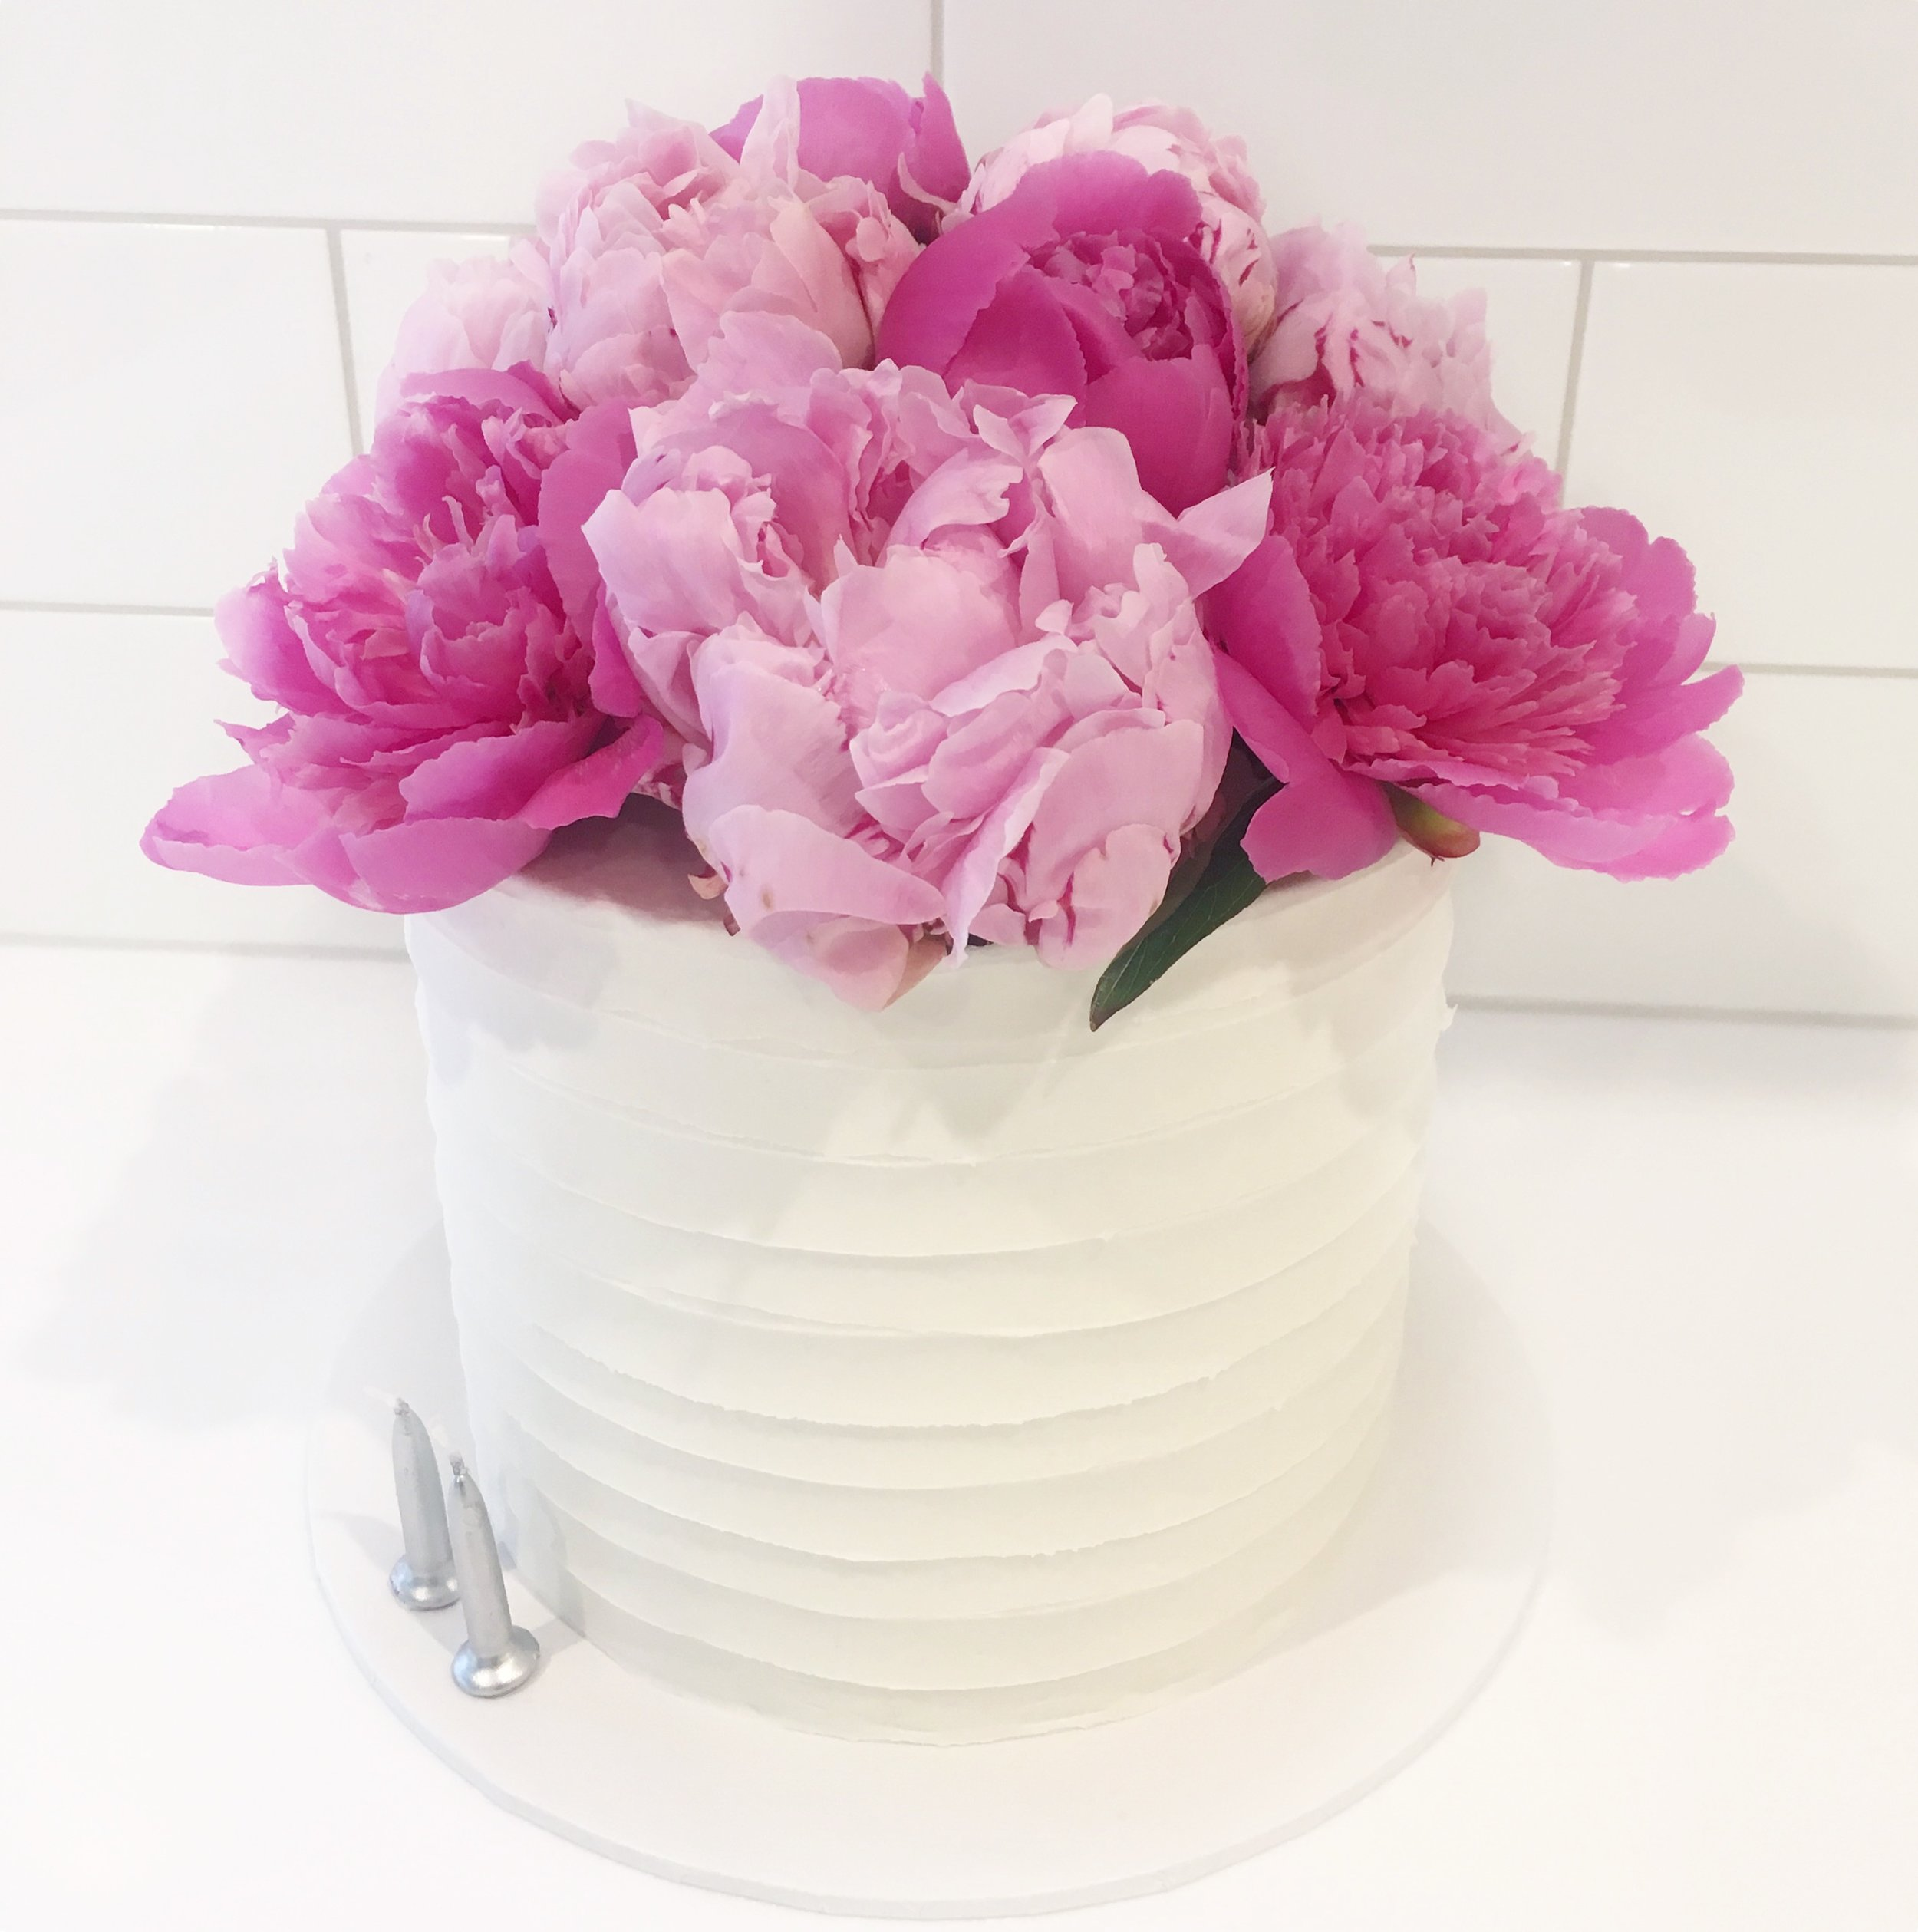 Buttercream Cake with Pink Peonies